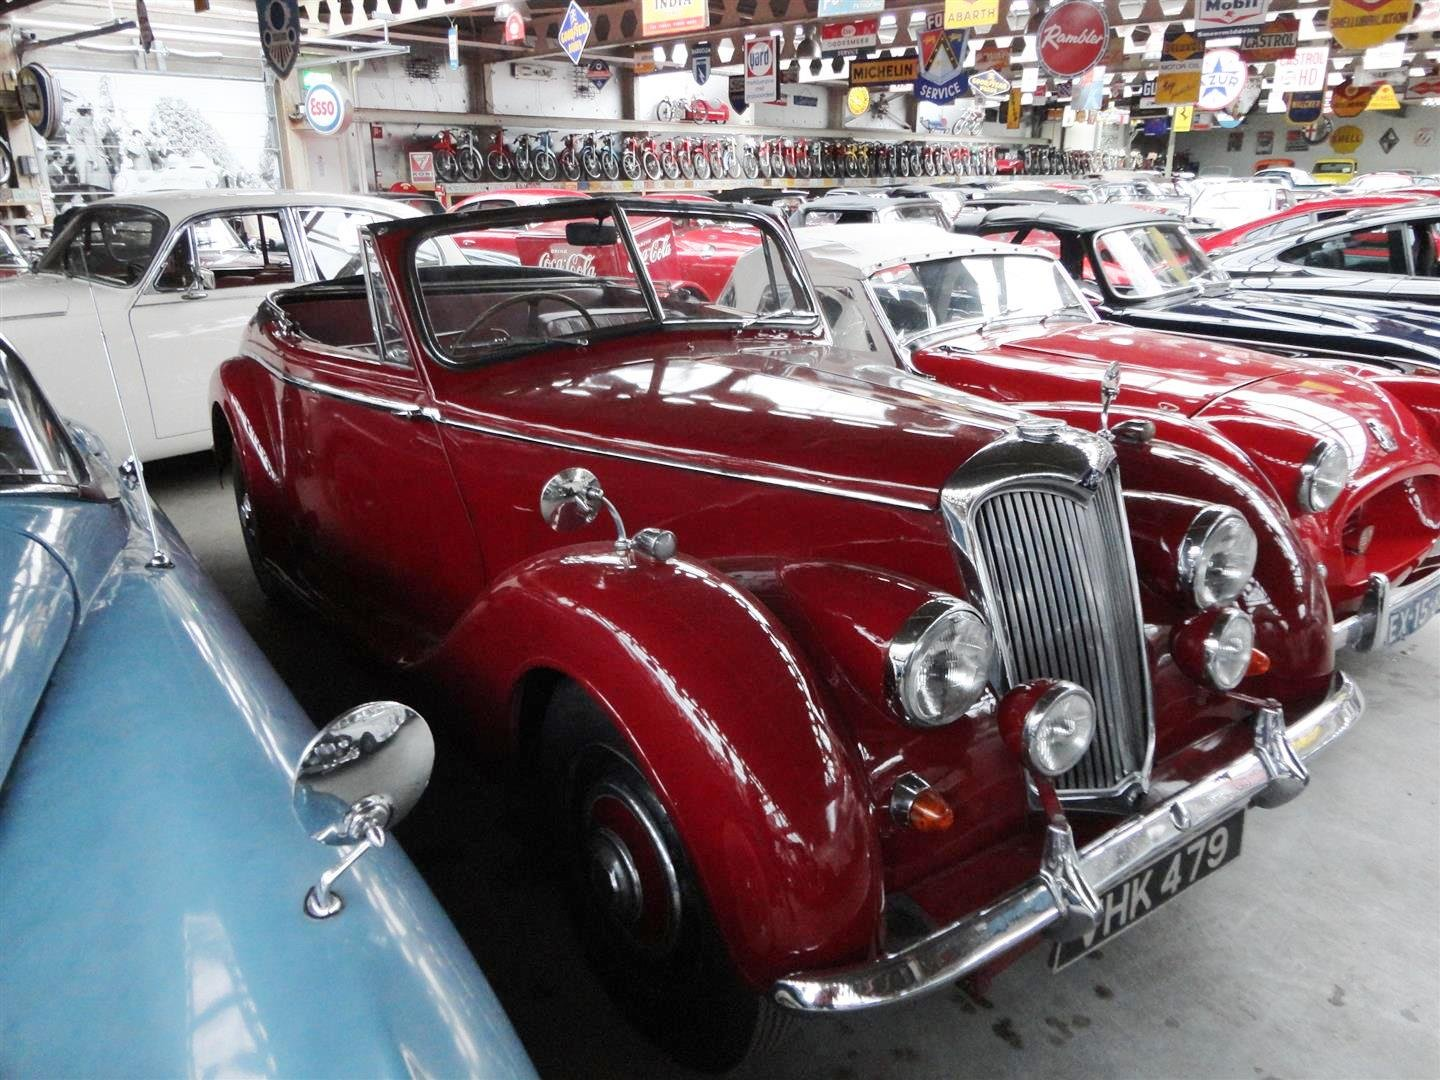 1952 Riley RMD RHD for sale For Sale (picture 6 of 6)